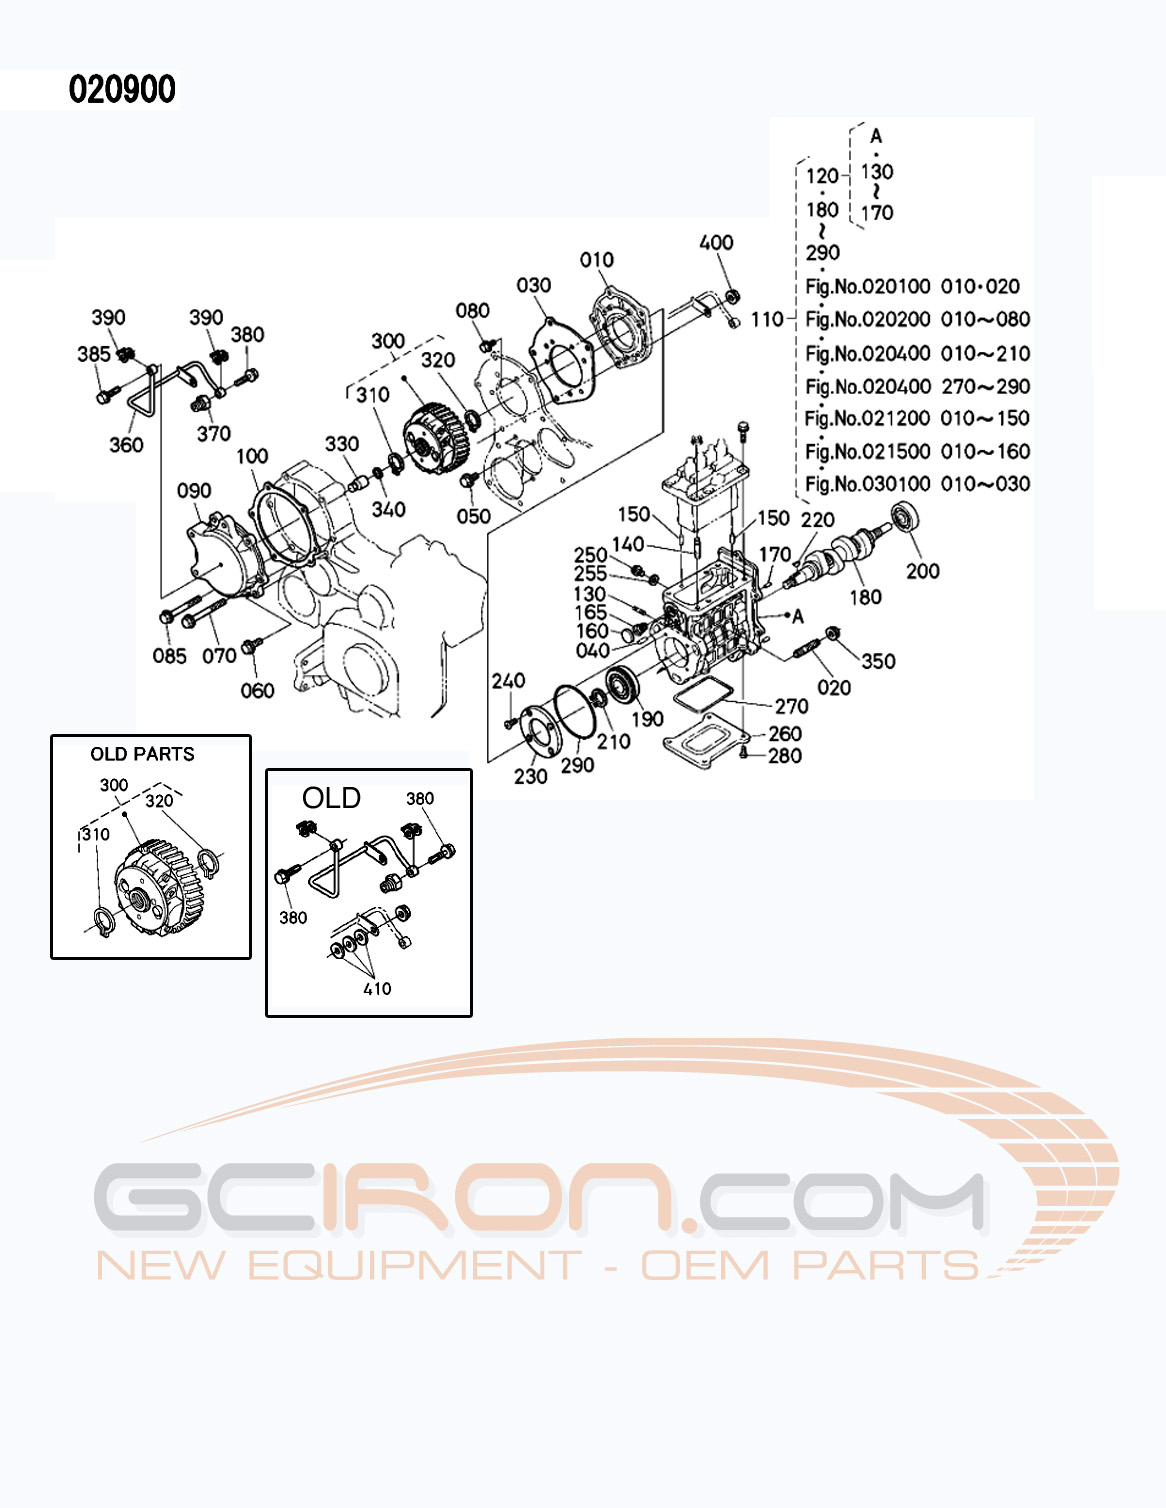 2910V3600E3B116_1 construction equipment parts jlg parts from www gciron com kubota d722 wiring diagram at edmiracle.co